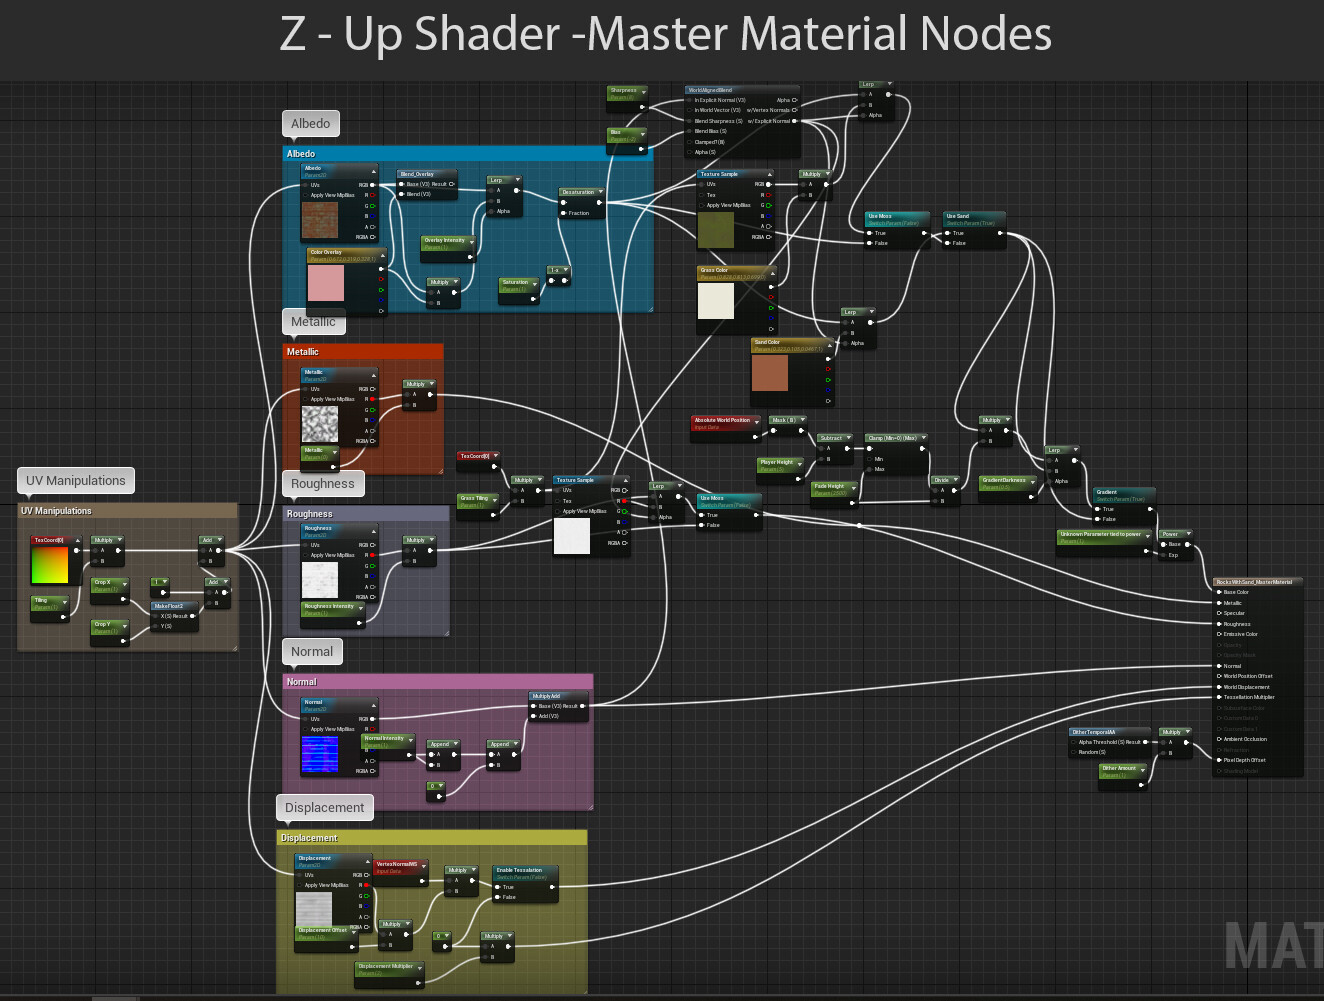 Z-Up Shader: